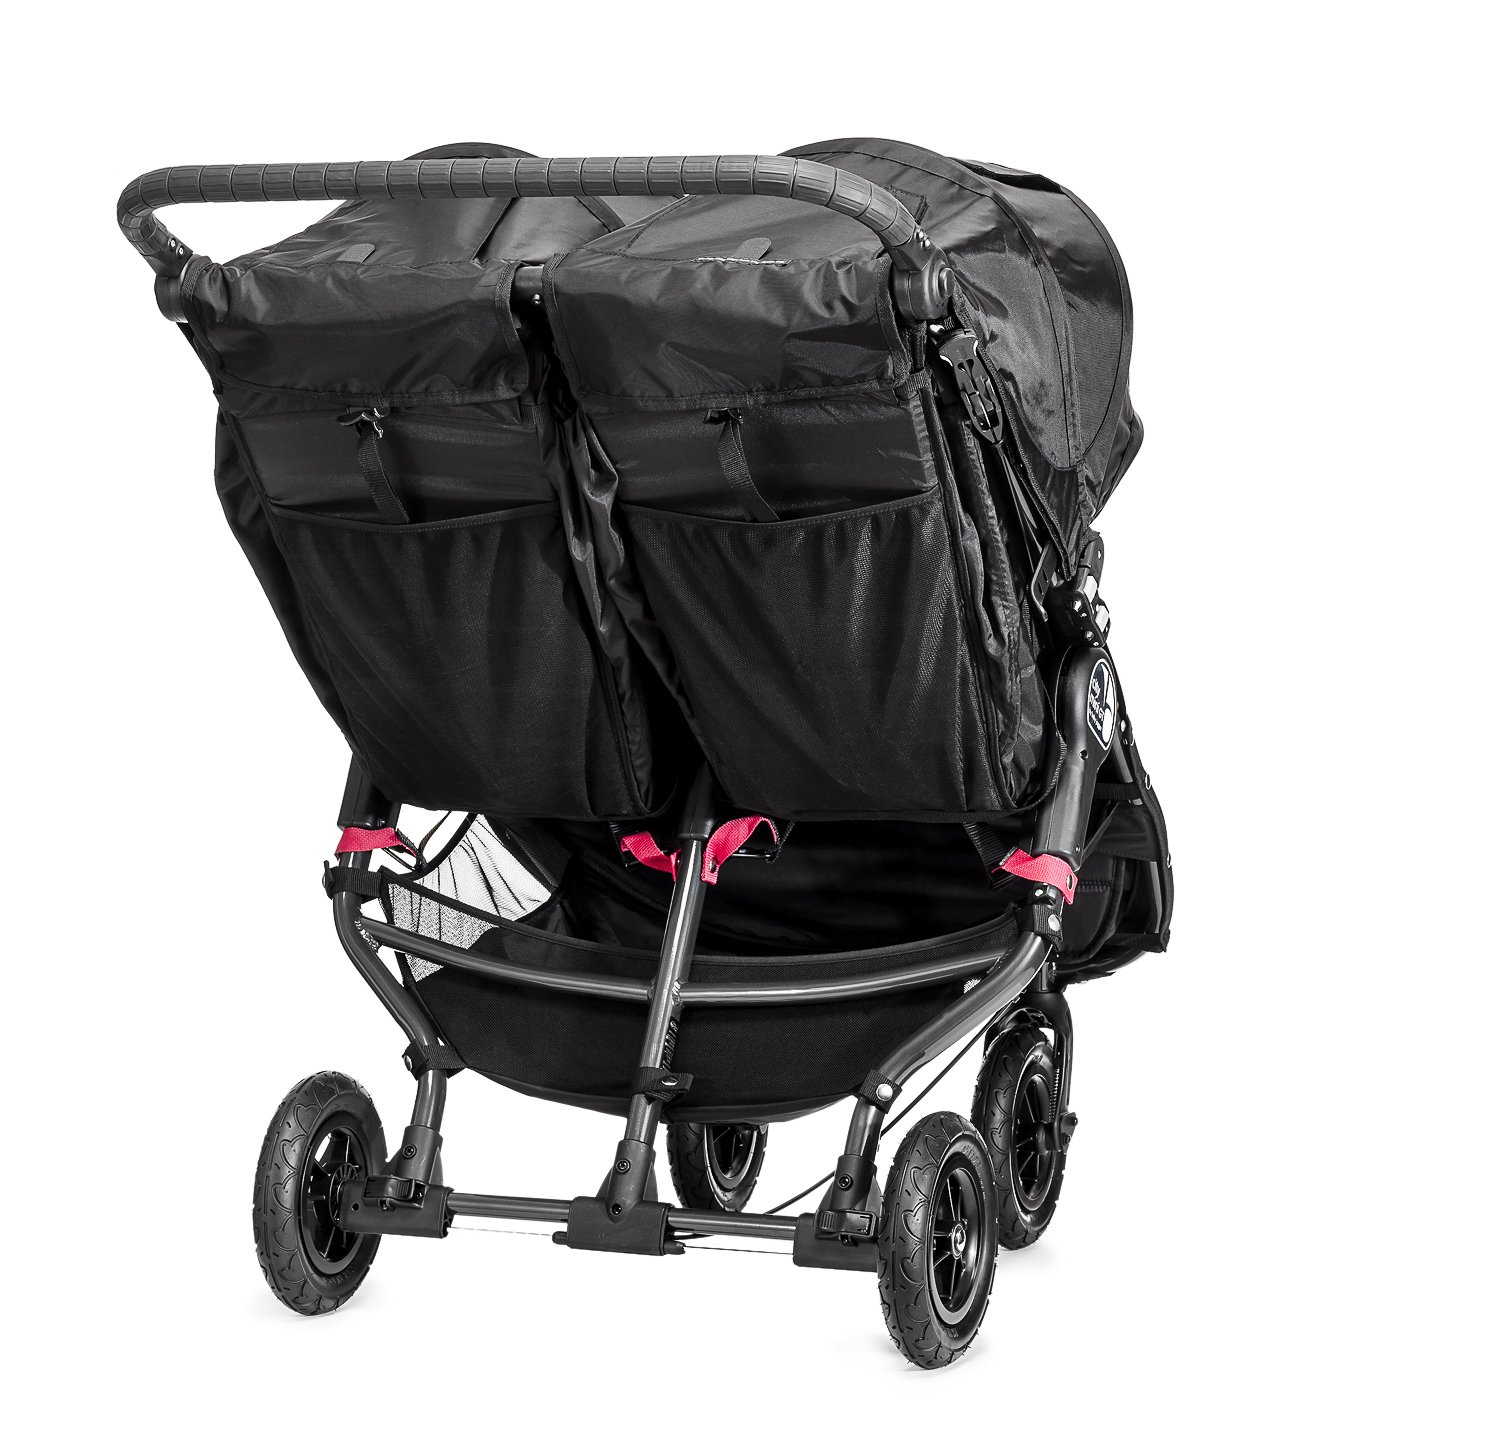 Baby Jogger City Mini GT Double Stroller Black  Taking a little detour is fun, the City Mini GT Double offers all-terrain wheels that let you make your own rules; the all-terrain wheels and front wheel suspension work in unison to give you full control on where and how you go while keeping your little one comfortable Lift the straps and the City Mini GT Double folds itself: Simply and compactly, it really is as easy as it sounds; the auto-lock will lock the pushchair for transportation or storage An adjustable handlebar can accommodate different heights and a hand-operated parking brake keeps all the controls within reach 3